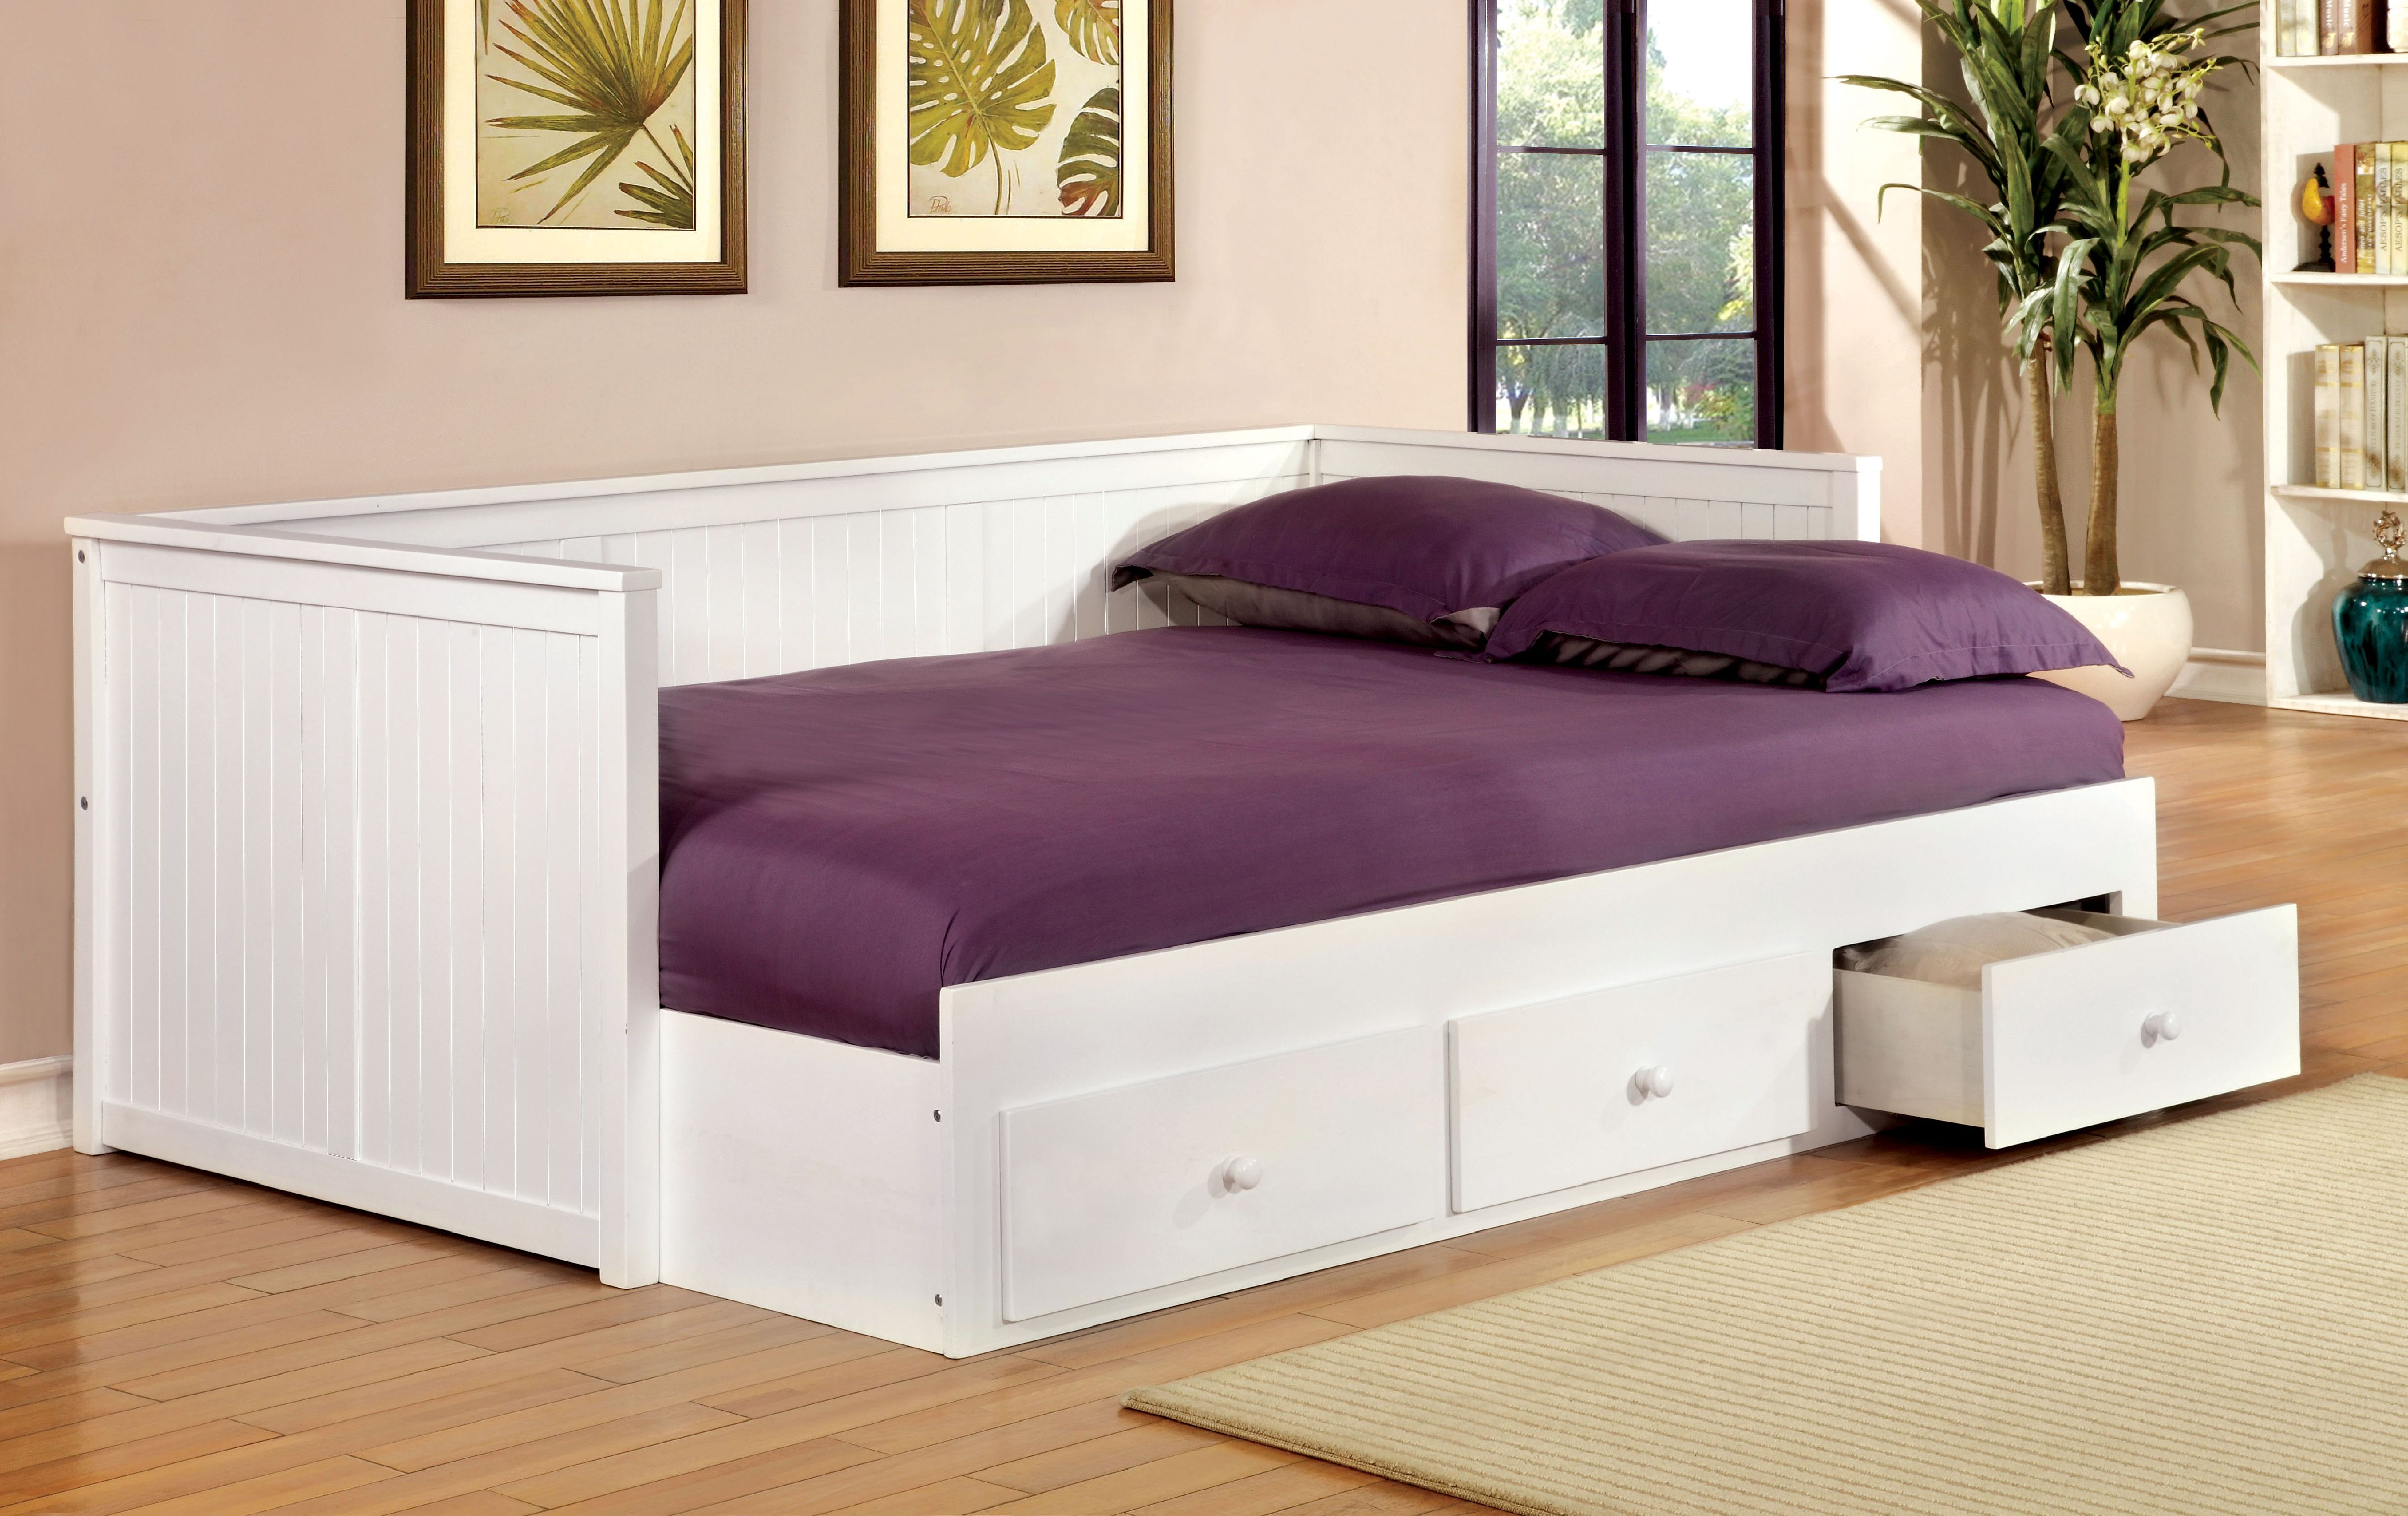 Furniture Of America Sorrinah Wood Daybed With Drawers Full White Walmart Com Walmart Com